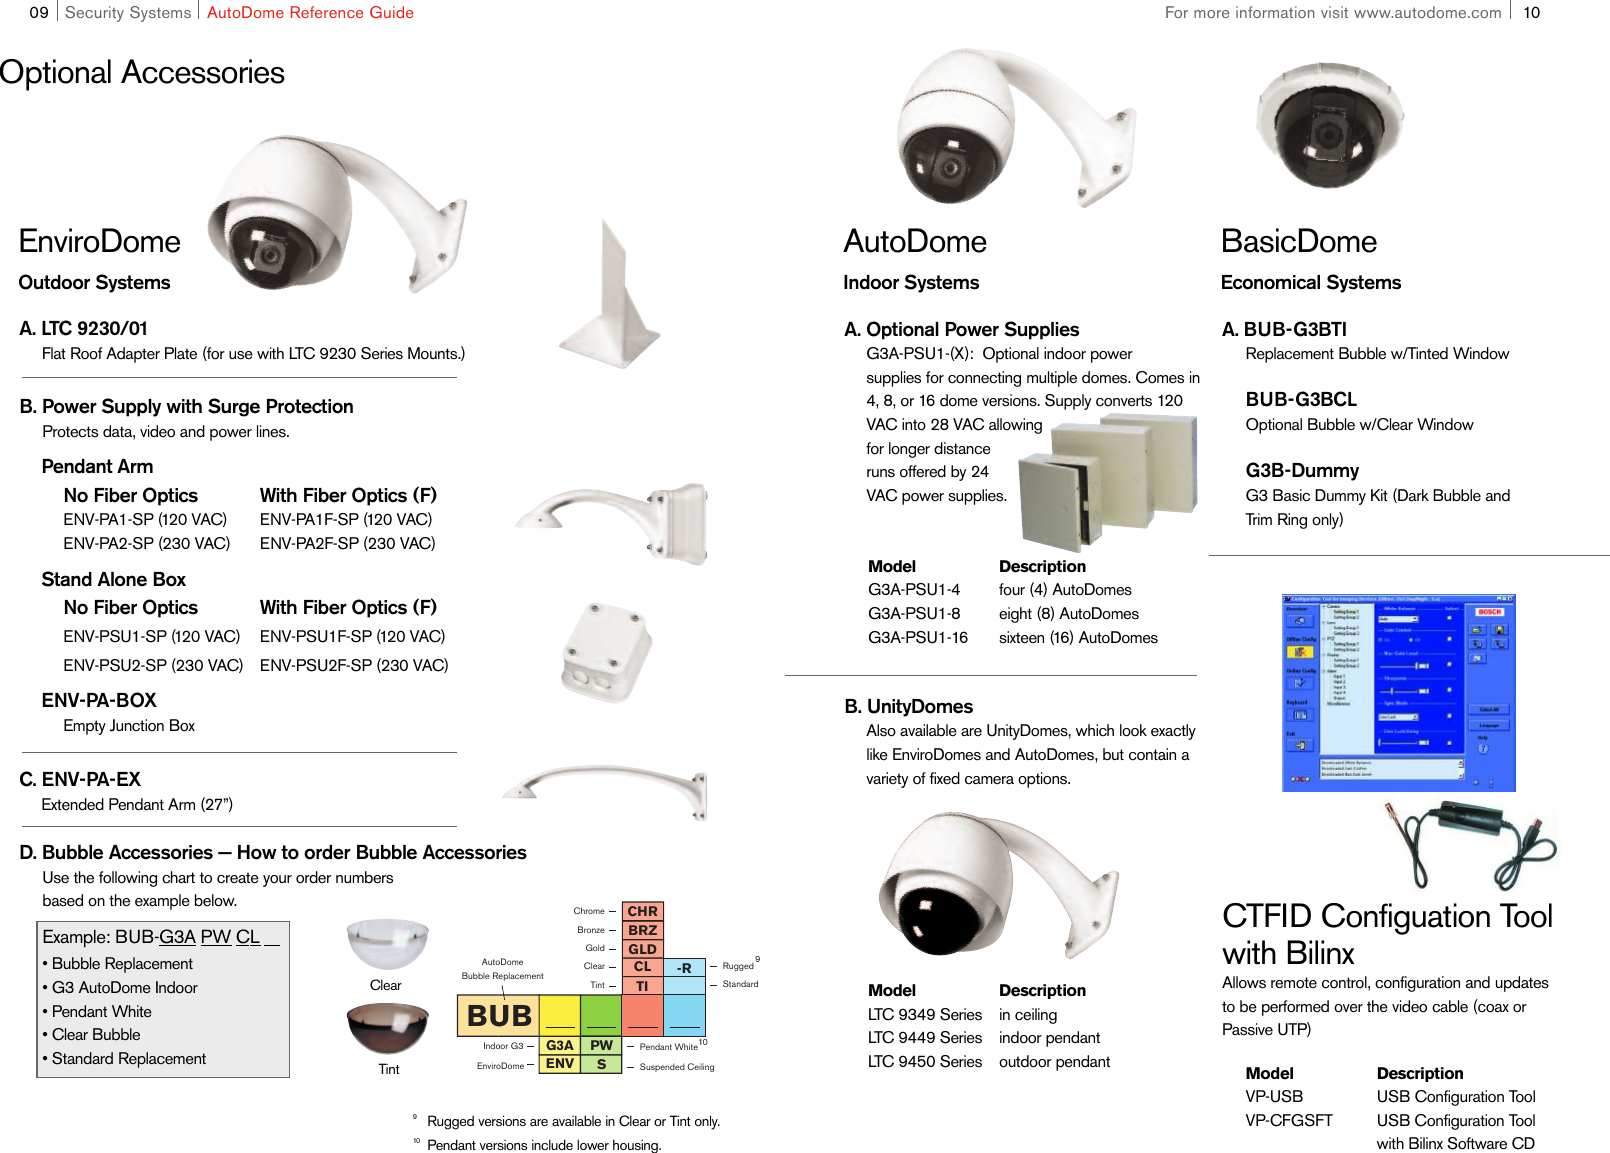 Boschhome bosch appliances security camera f01u002316c users manual page 6 of 12 boschhome boschhome bosch appliances security camera cheapraybanclubmaster Gallery